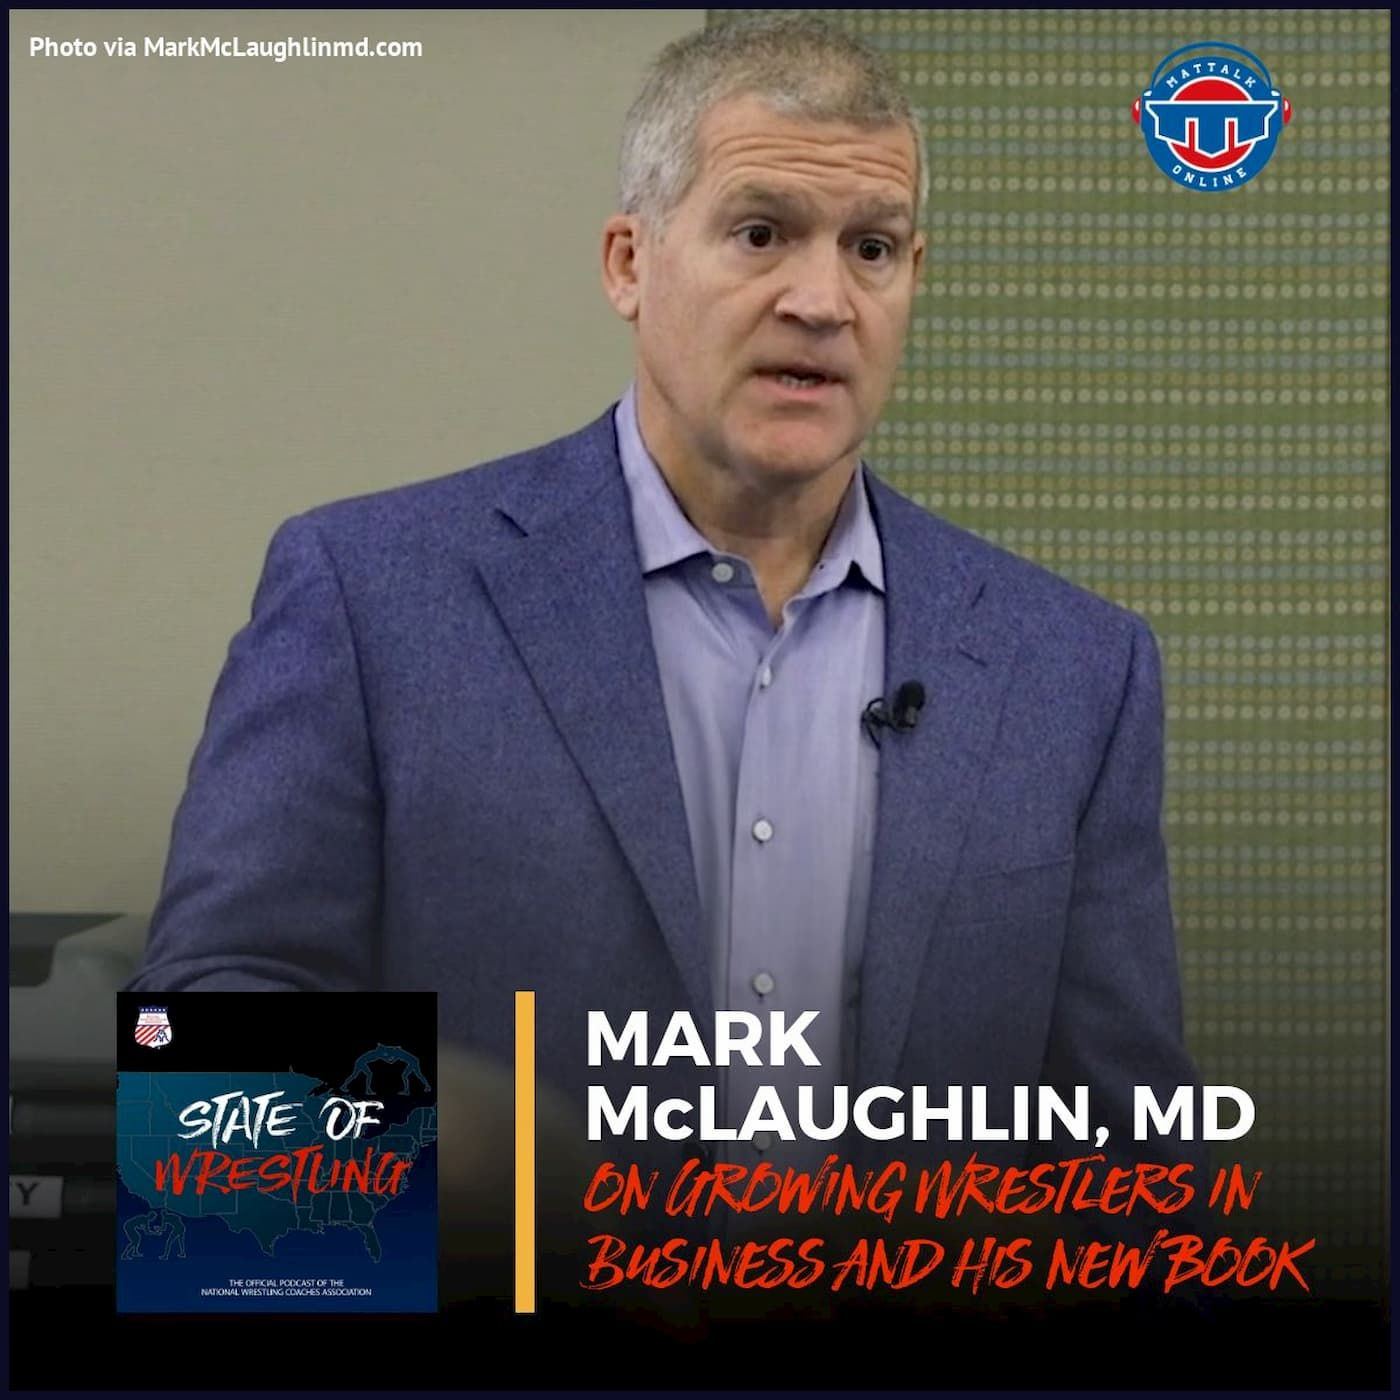 Dr. Mark McLaughlin on the WIBN and his book, Cognitive Dominance